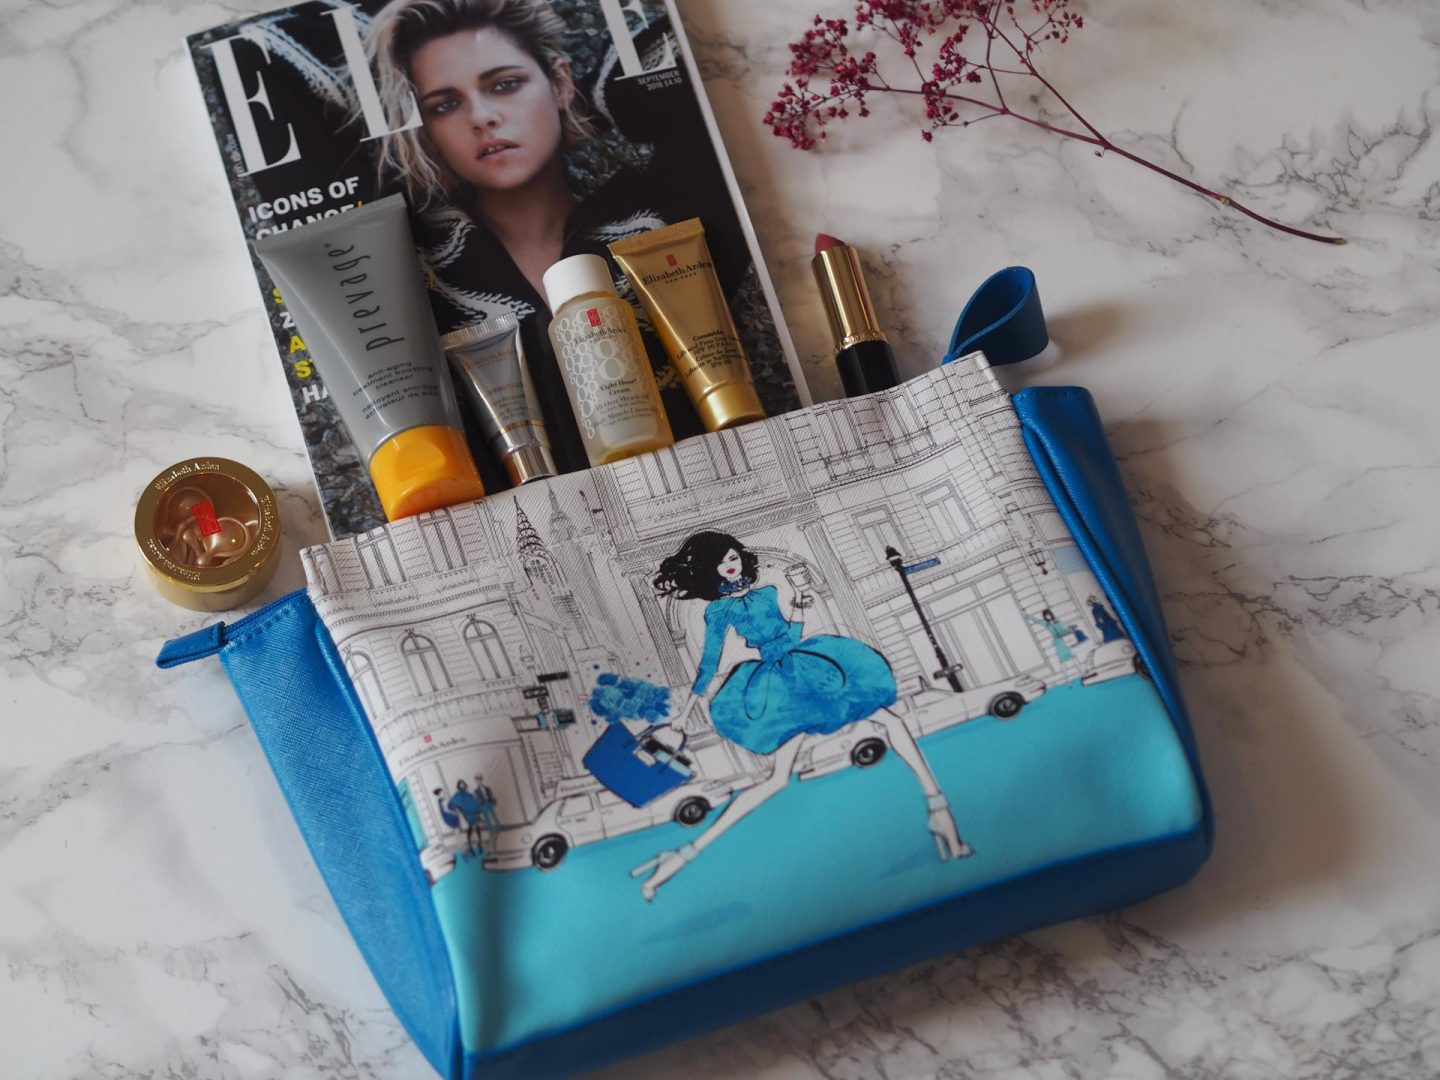 The Megan Hess cosmetics bag is an amazing gift with purchase if you buy even two Elizabeth Arden products. I love the Elizabeth Arden Visible Difference ...